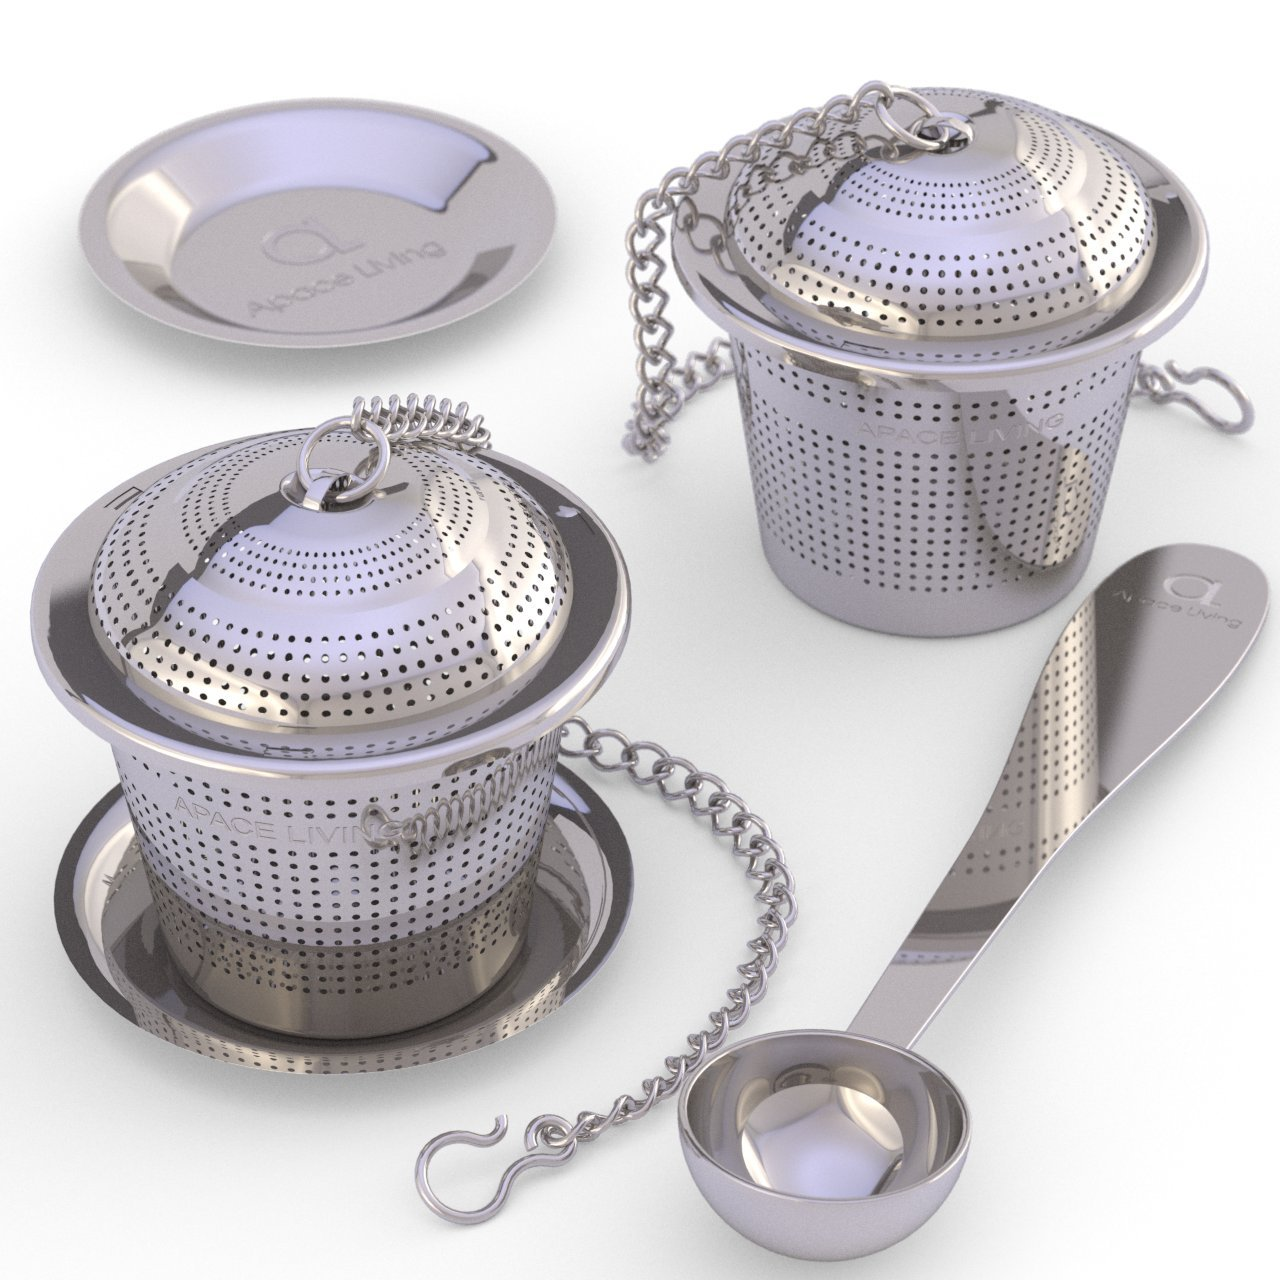 Apace Loose Leaf Tea Infuser (Set of 2) with Tea Scoop and Drip Tray - Ultra Fine Stainless Steel Strainer & Steeper for a Superior Brewing Experience ... (Medium, Silver) by Apace Living